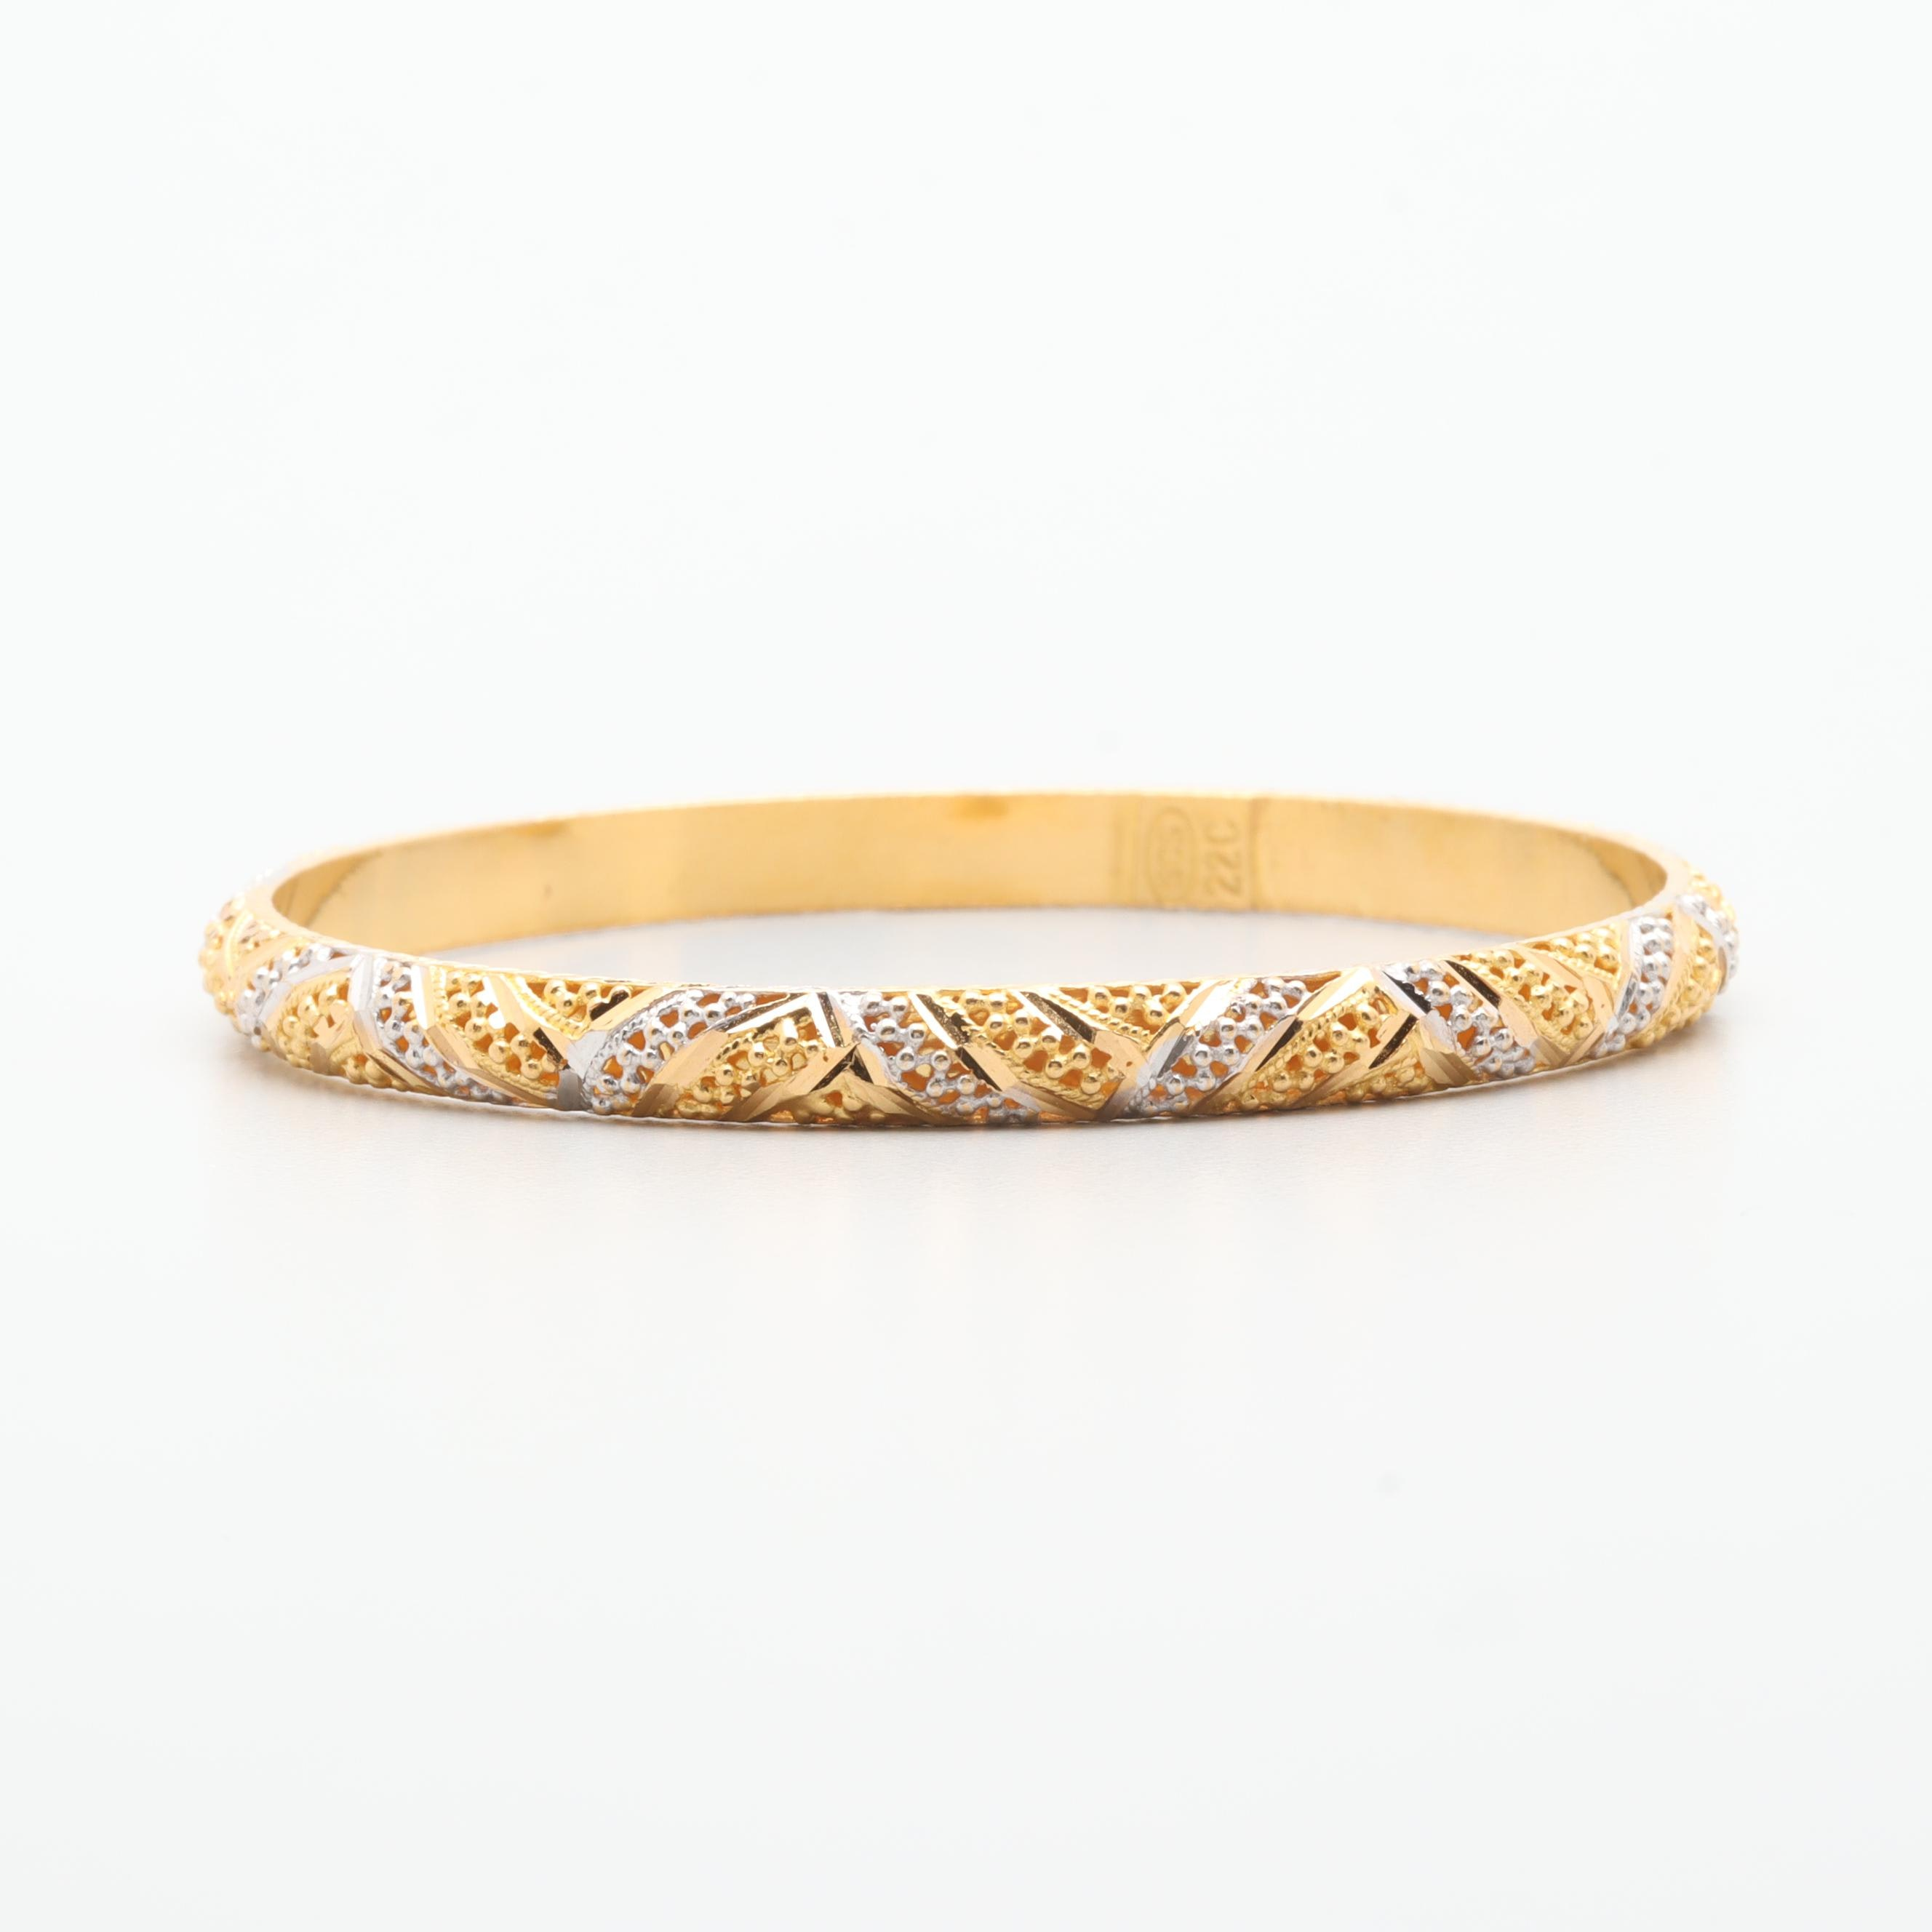 14K Yellow Gold Bangle Bracelet with White Gold Accents